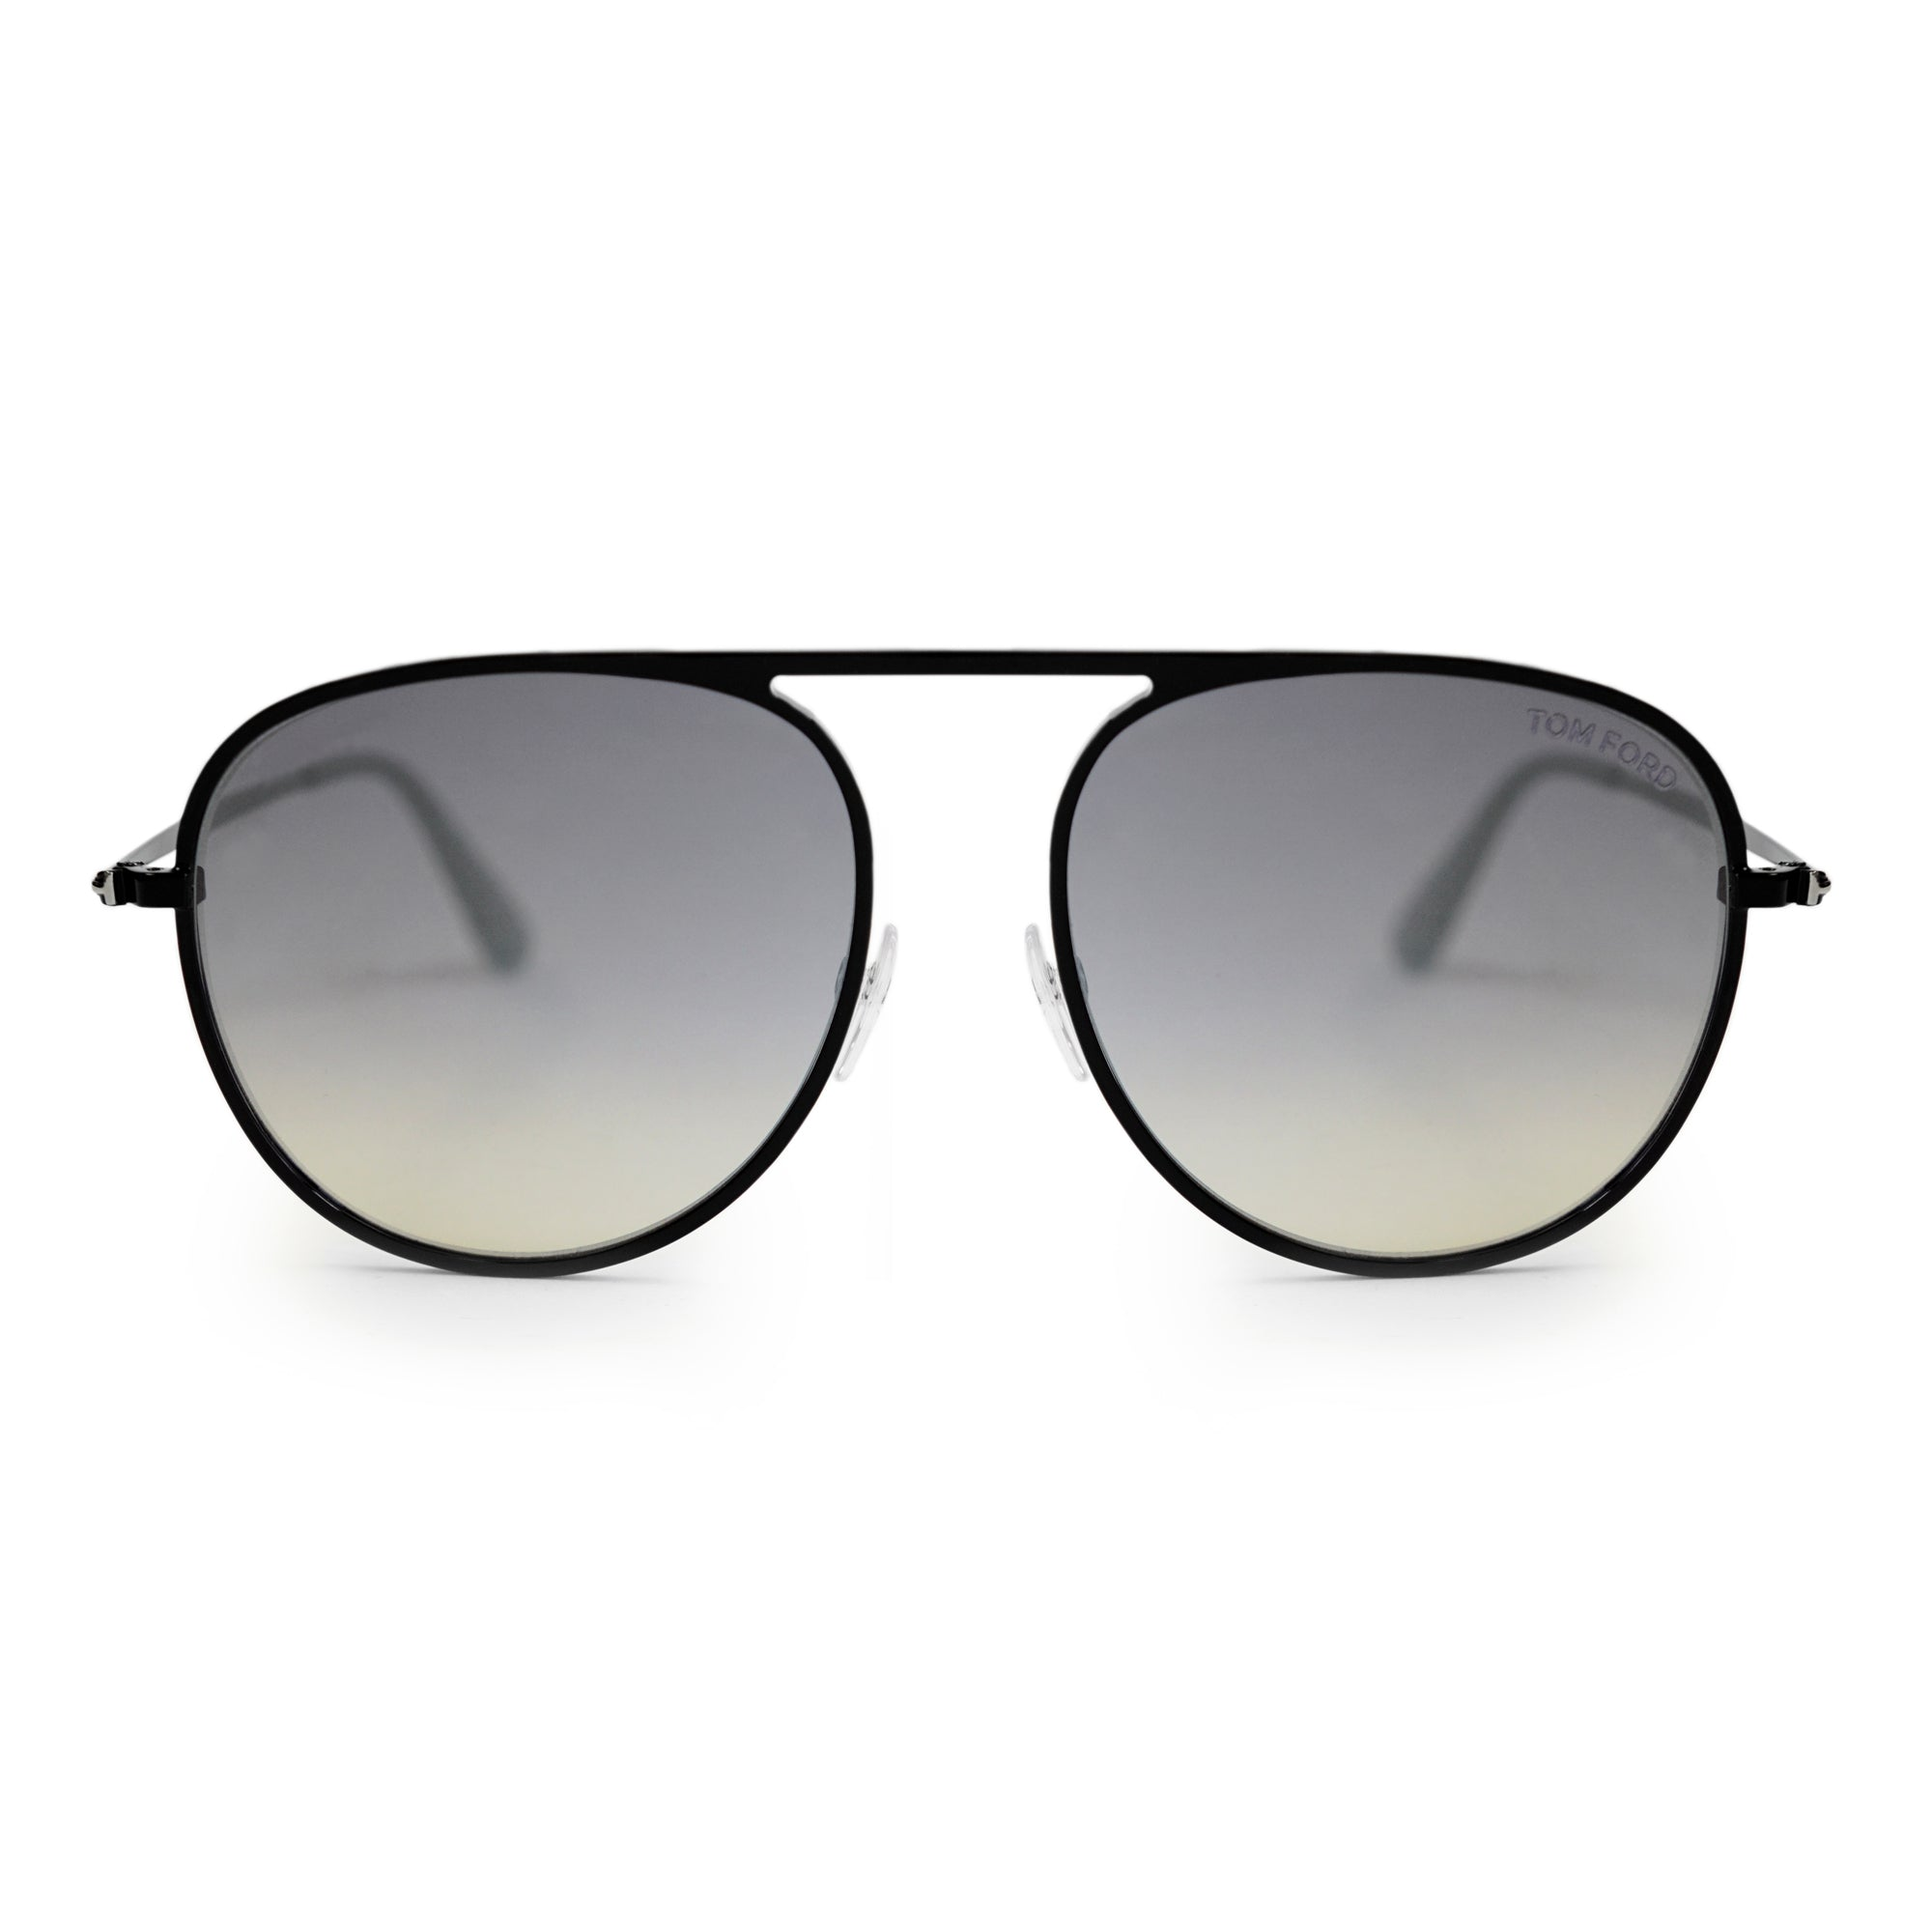 Tom Ford Jason-02 Black Oval Sunglasses FT0621 01C